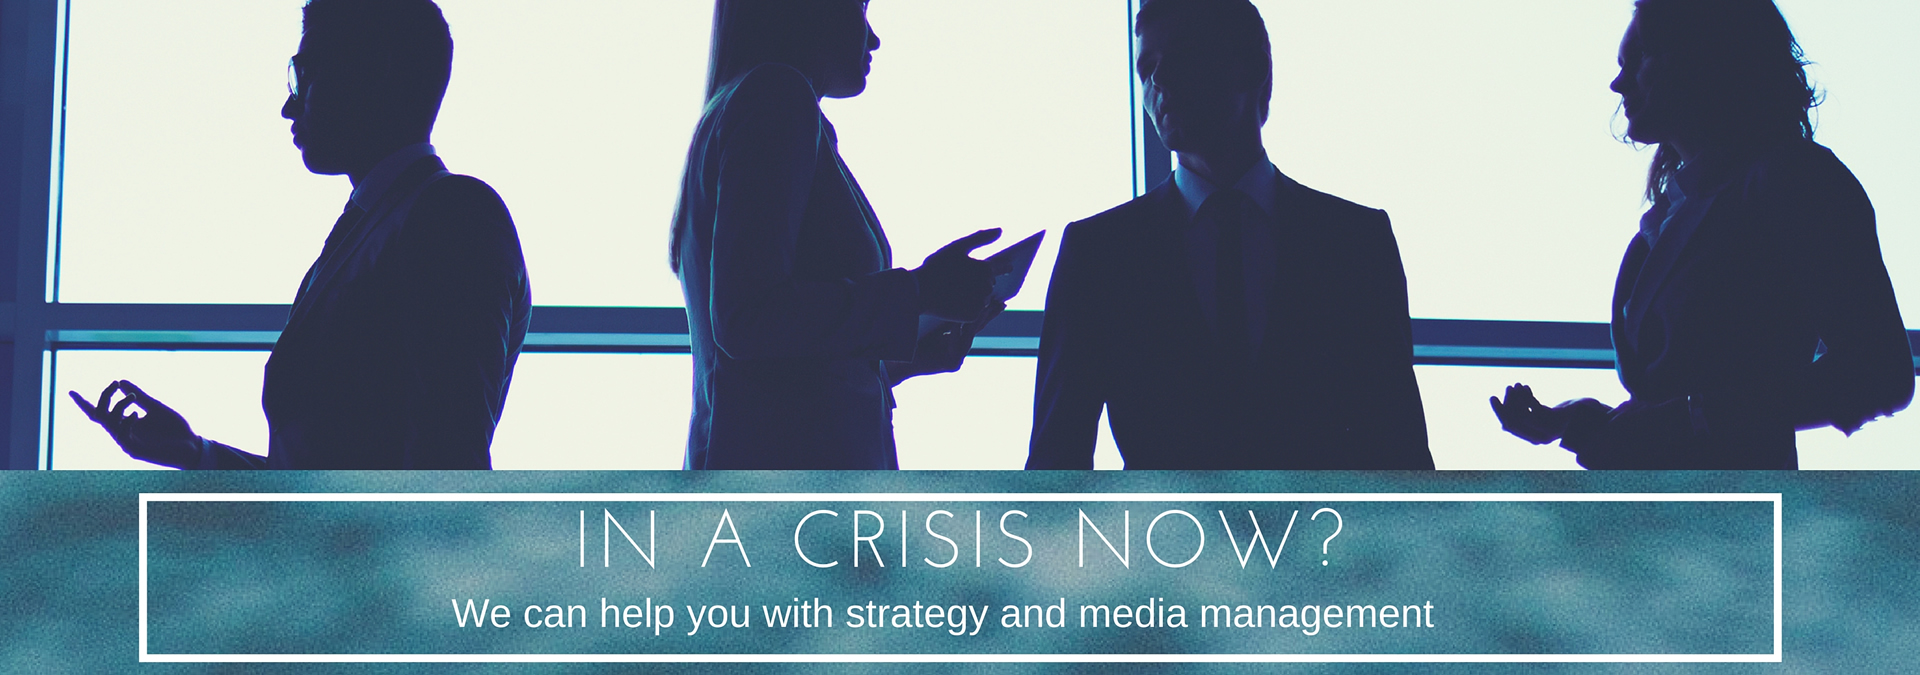 Crisis support from Brian Sterling-Vete and Mental Martial Arts